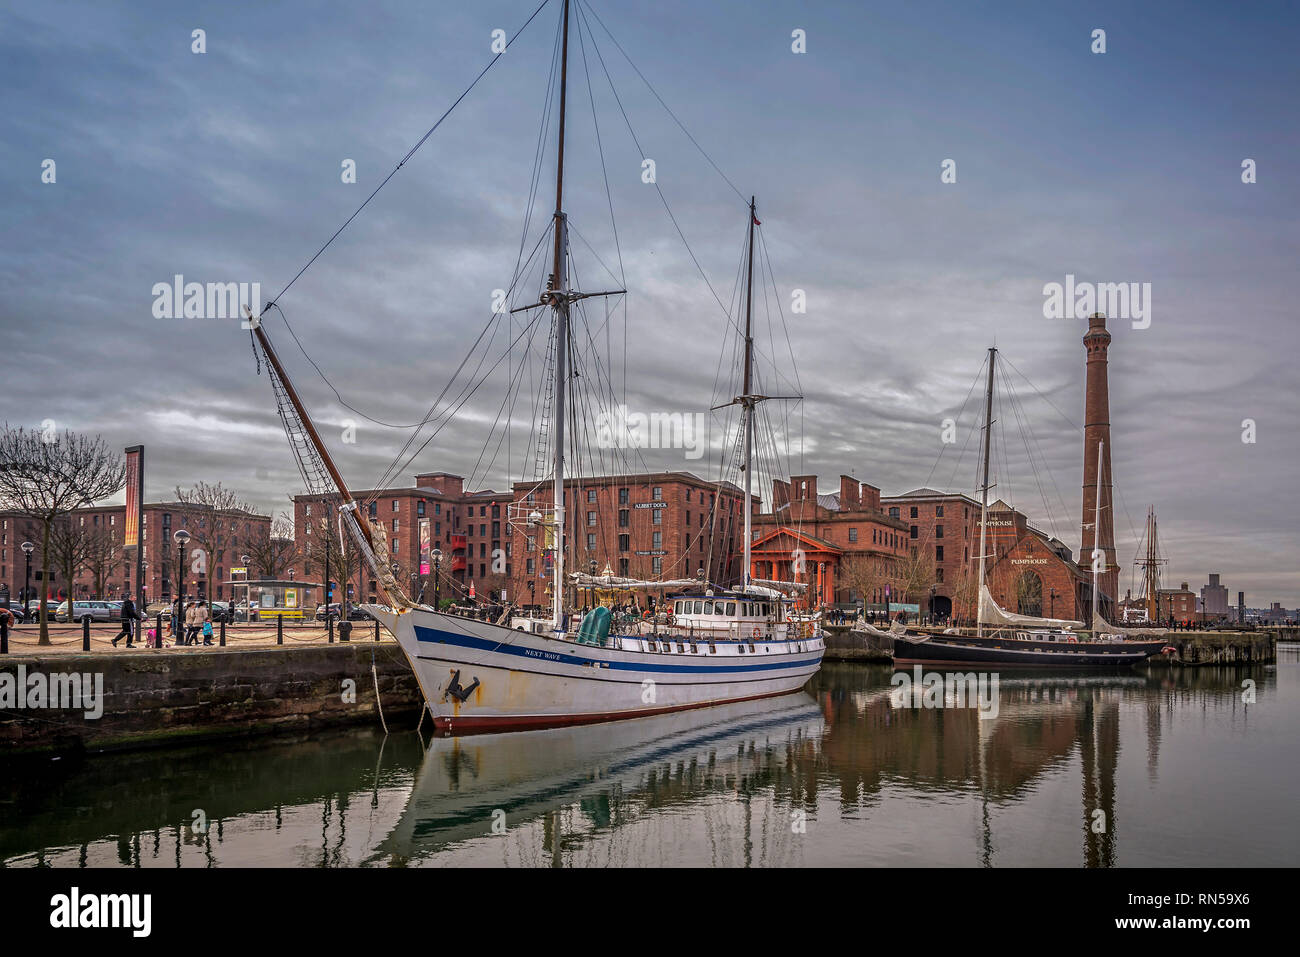 Sailing ships berthed in the Canning dock part of the Royal Albert Dock complex at Liverpool pierhead. - Stock Image